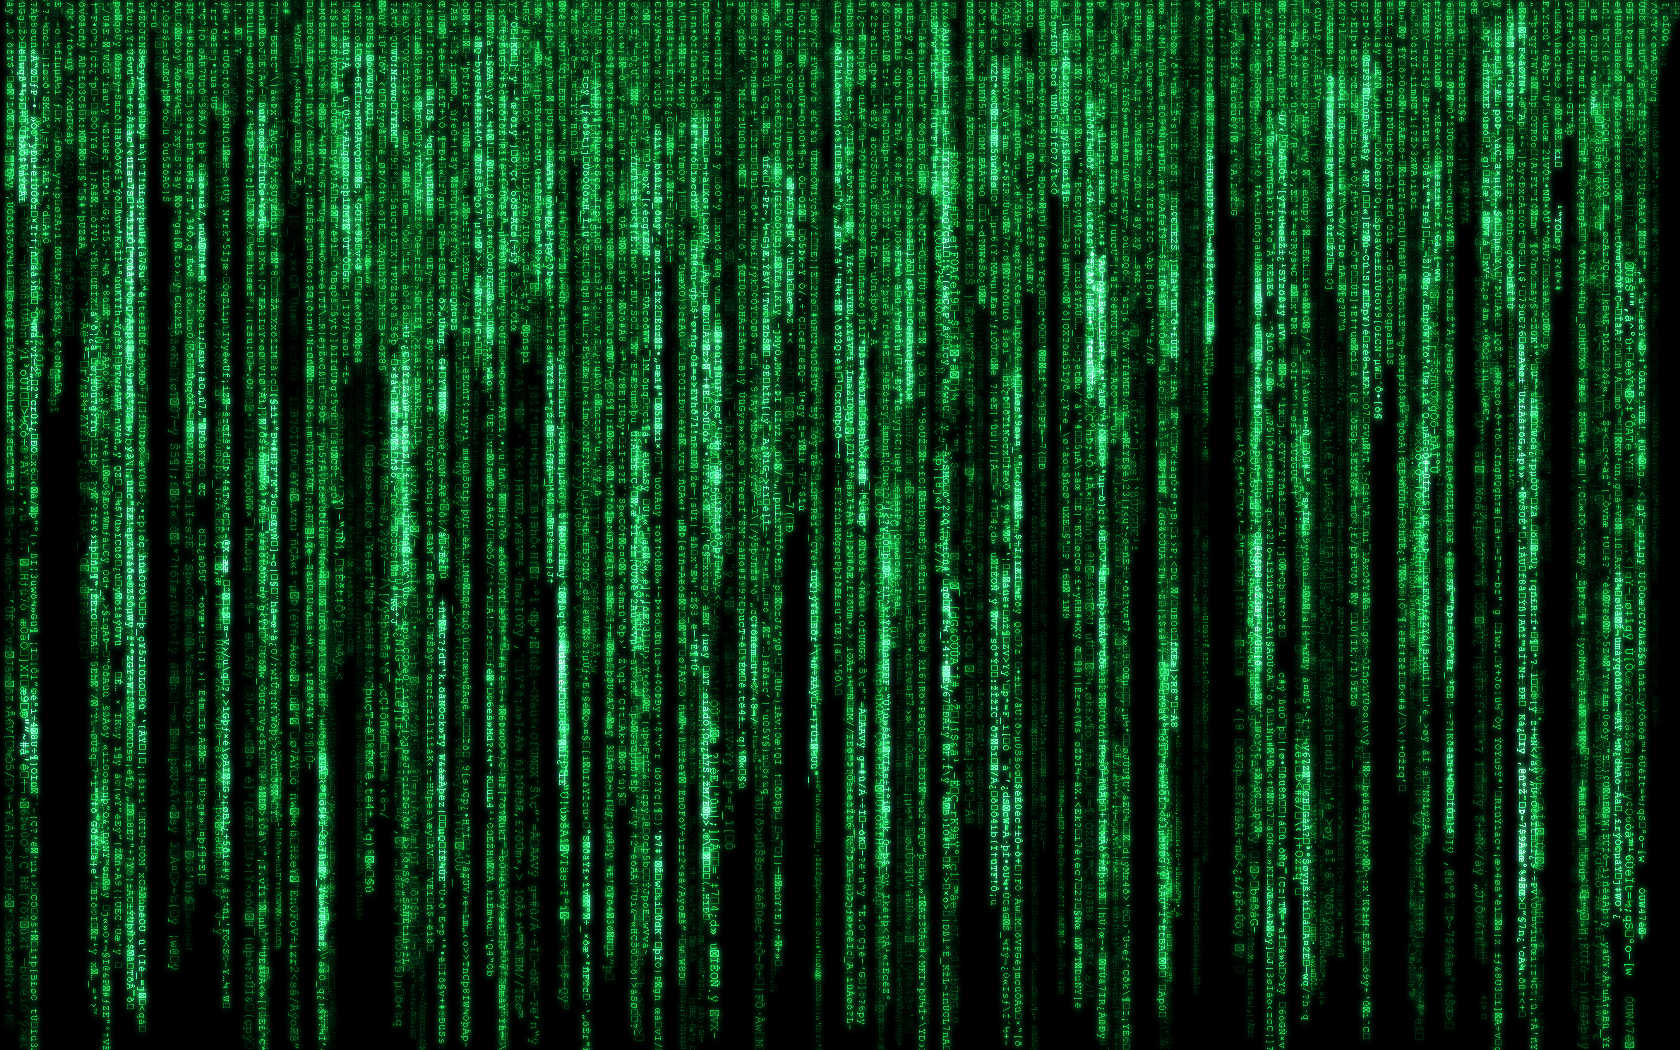 0 Matrix Wallpaper For Windows 10 Matrix Wallpap - Matrix Wallpaper Iphone 5s , HD Wallpaper & Backgrounds